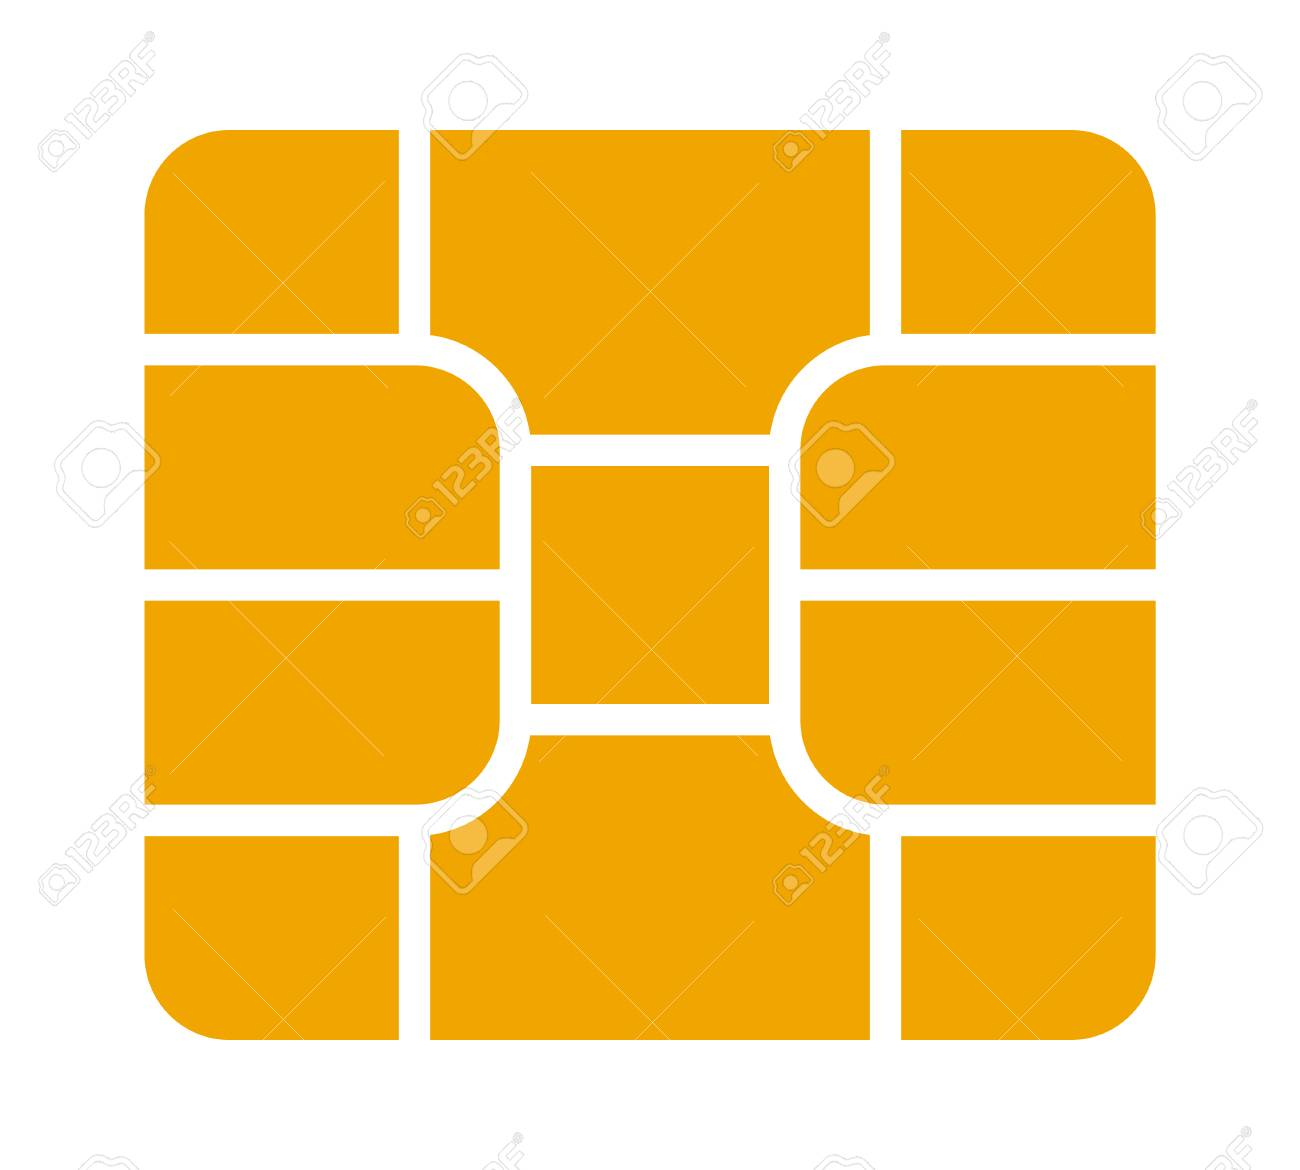 Gold credit or debit charge card emv chip flat vector icon for apps and websites - 113393157